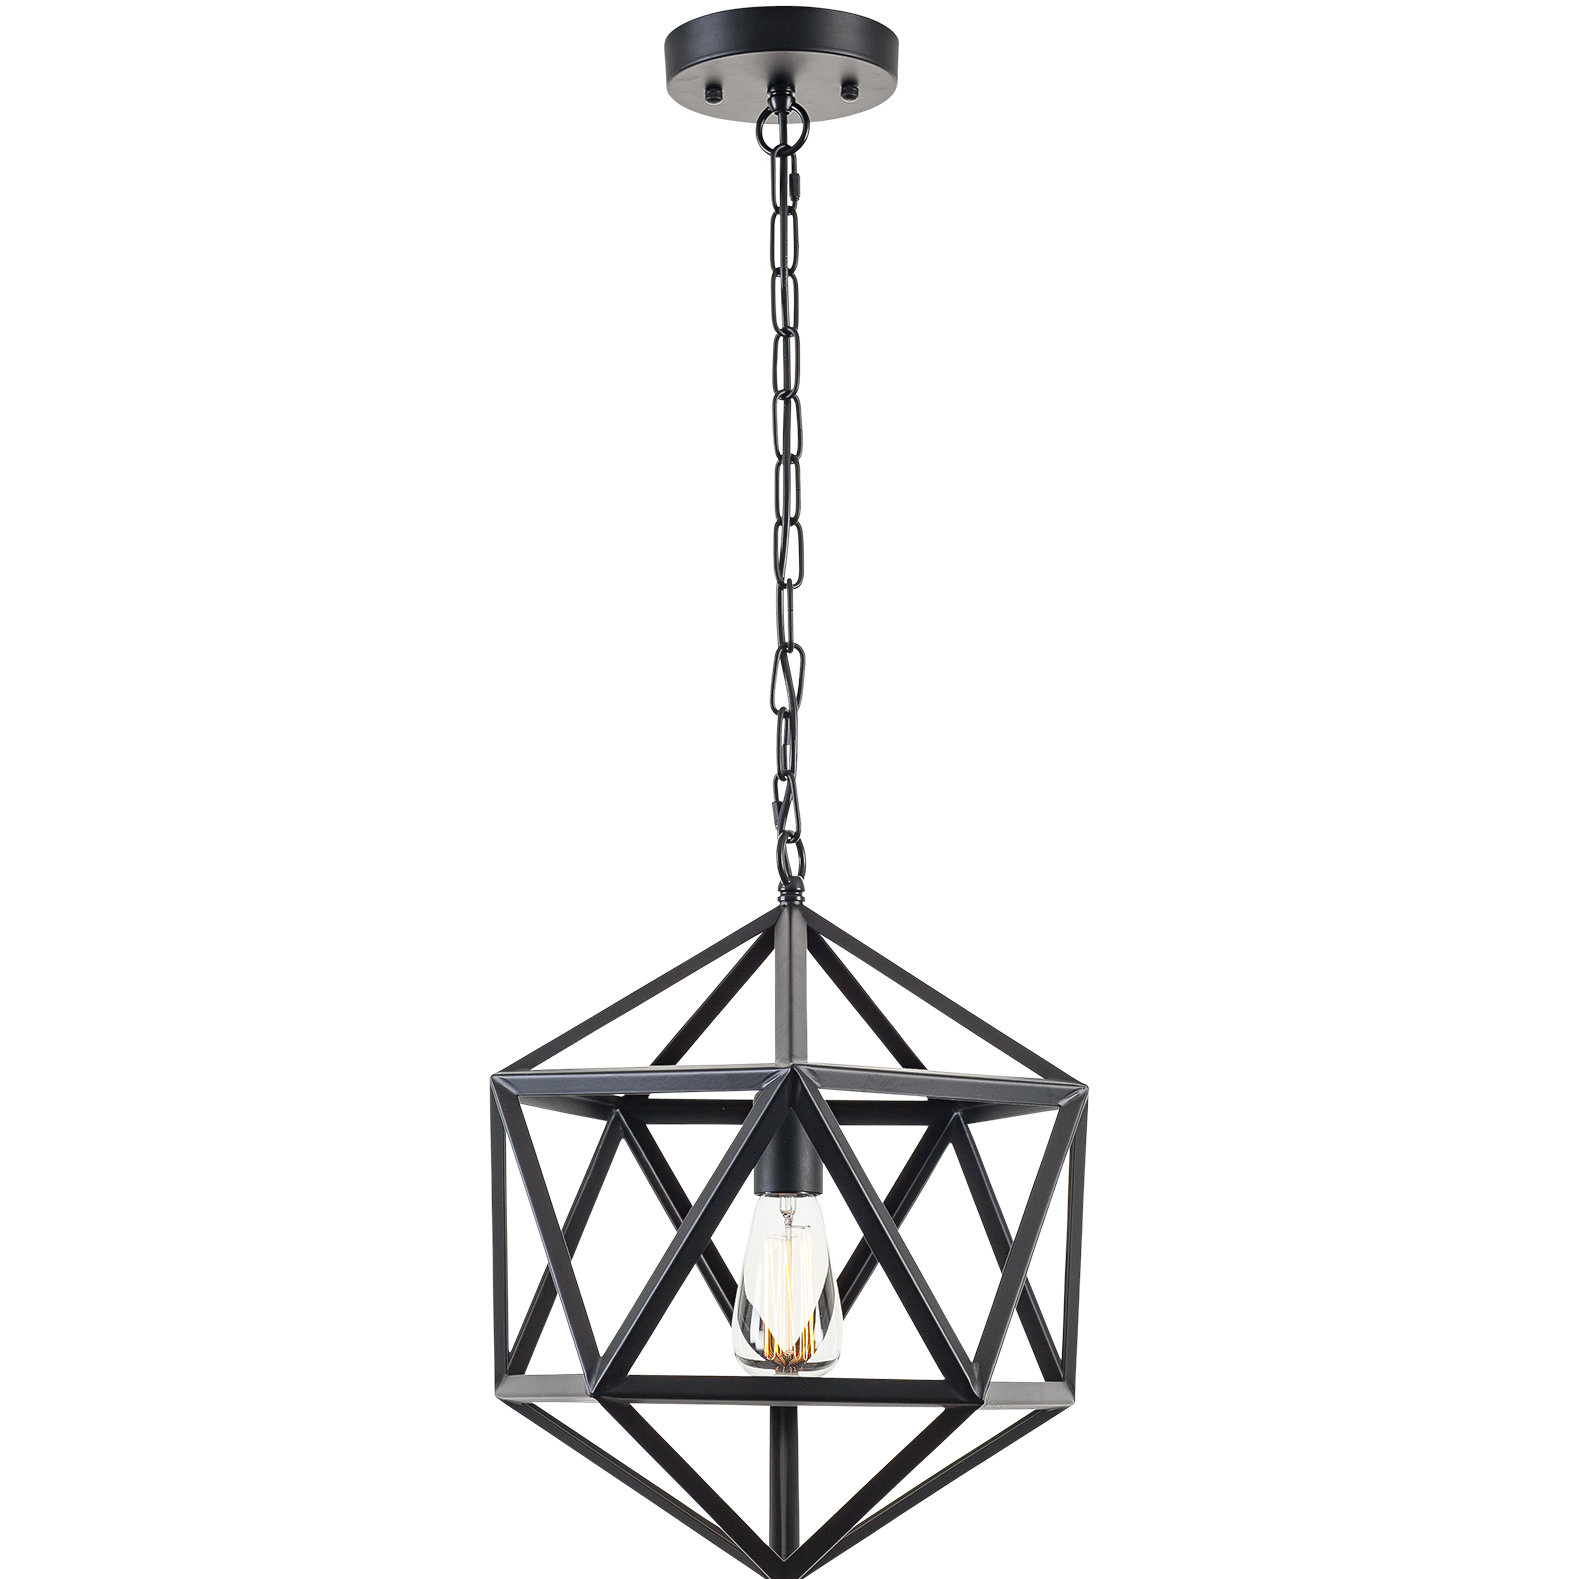 1 Light Lantern Geometric Pendant Within Delon 1 Light Lantern Geometric Pendants (Photo 13 of 30)